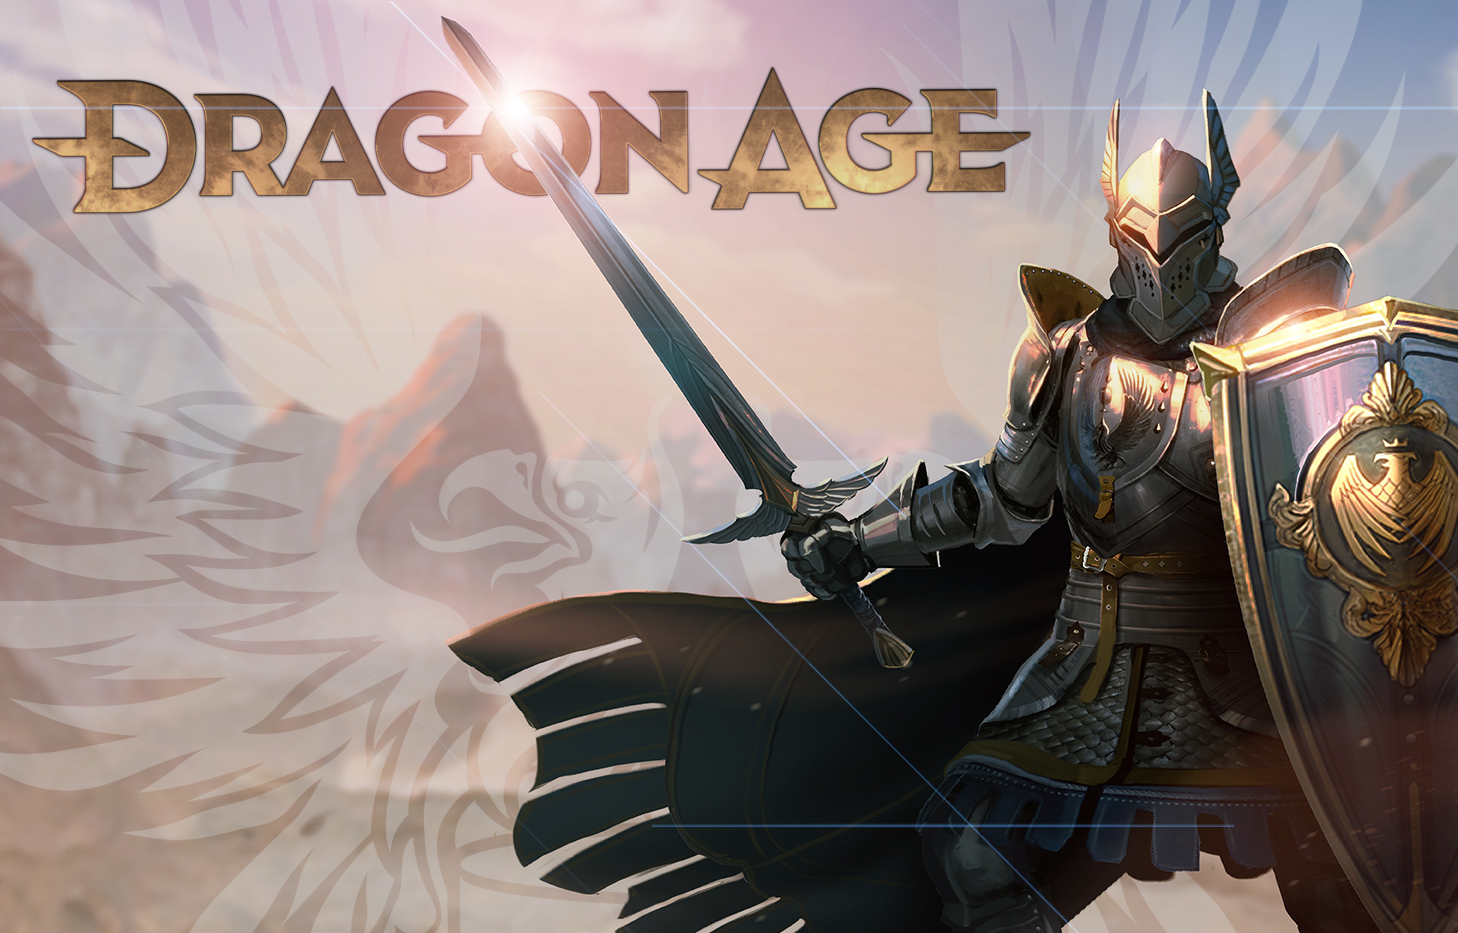 Dragon Age 4: New artwork from the much anticipated game